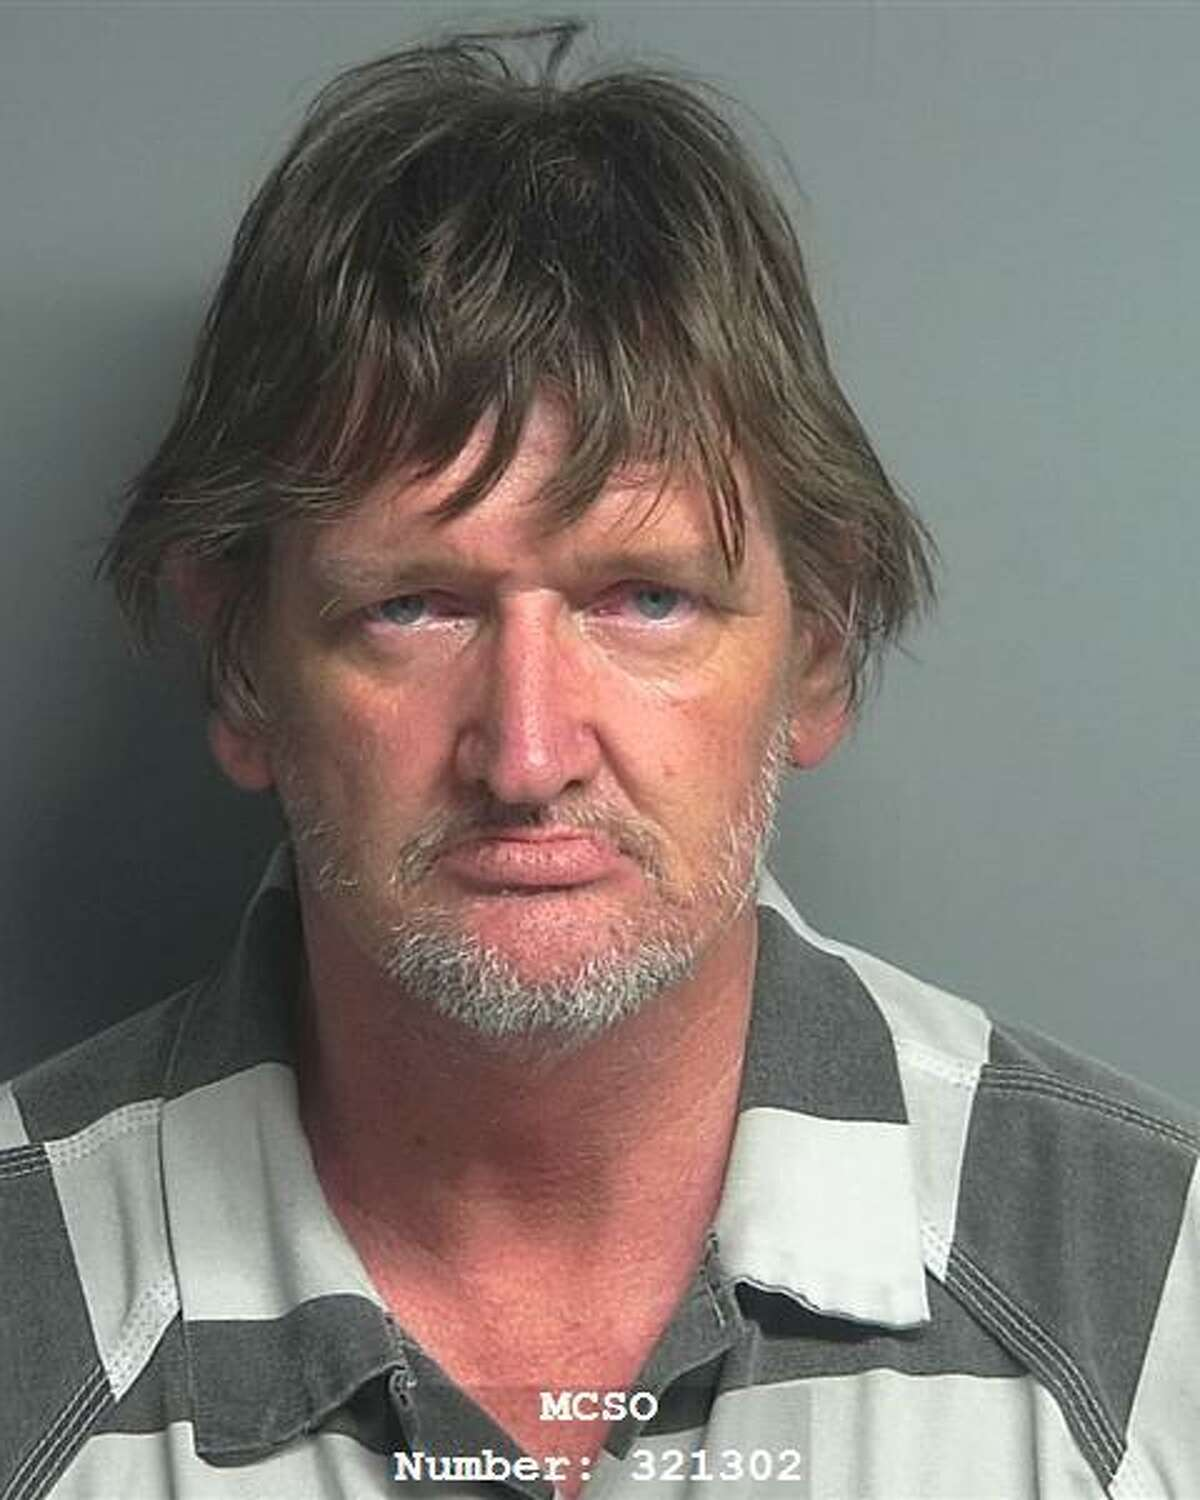 Christopher Gothard Lund, 51, of Shepherd, is being charged with online solicitation of a minor, a second-degree felony.